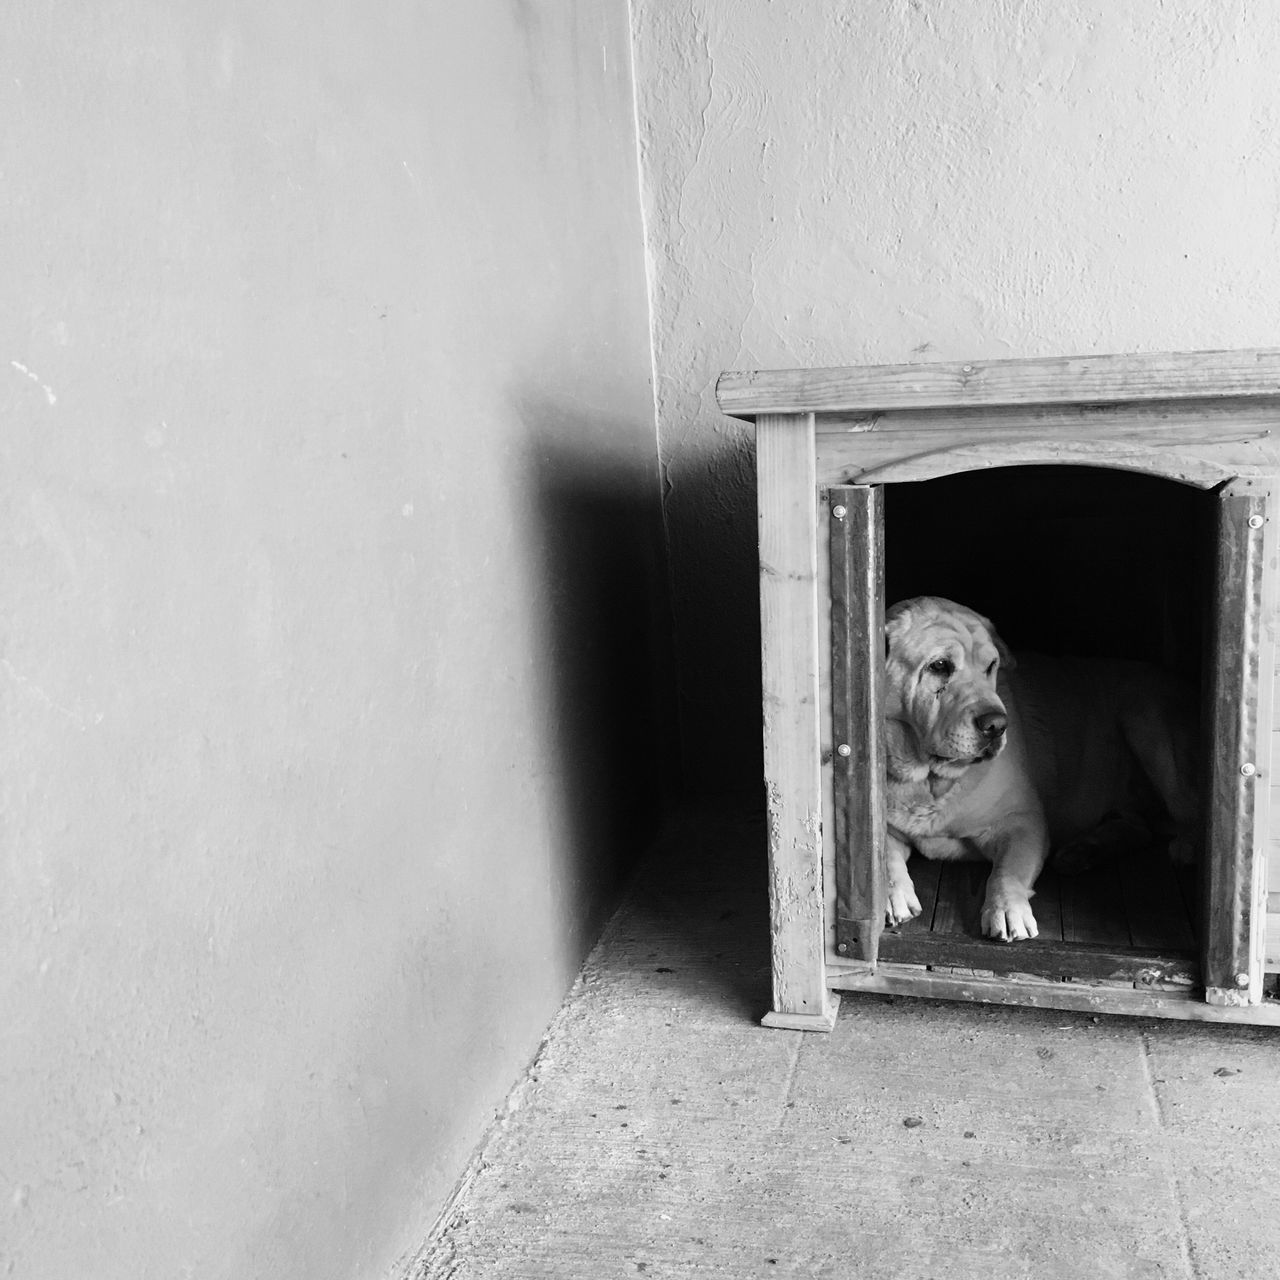 dog, one animal, door, entrance, pets, domestic animals, mammal, animal themes, built structure, doorway, architecture, no people, day, indoors, open door